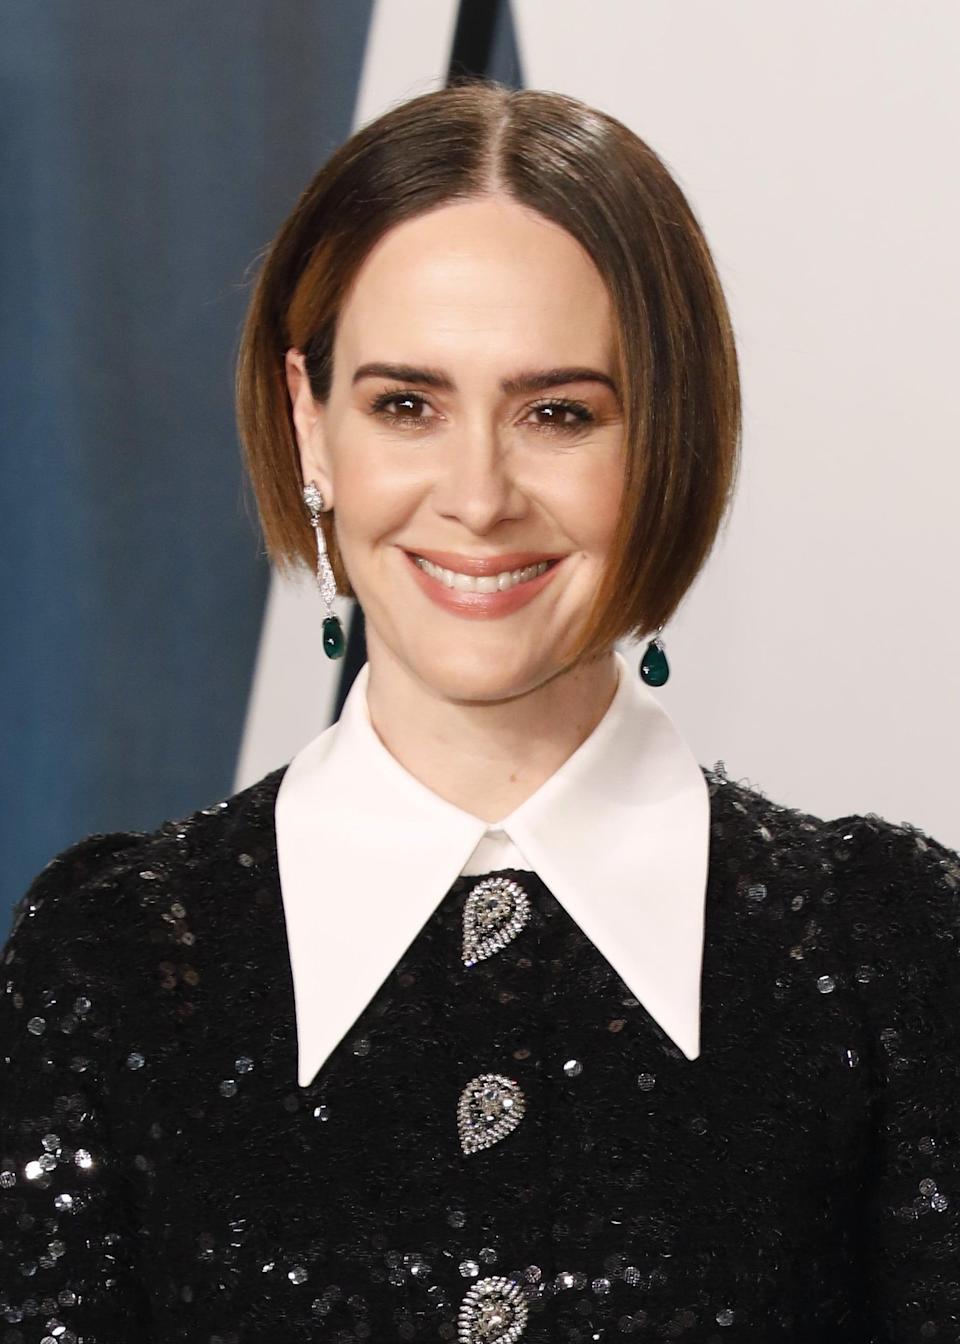 "<p>Paulson, who has worked with Murphy before on several seasons of <strong>American Horror Story</strong>, is set to play the iconic villain in her origin story. The show is set to follow Ratched - who's still just ""Mildred"" here - as a nurse at a psychiatric hospital that's conducting disturbing experiments in the late 1940s.</p>"